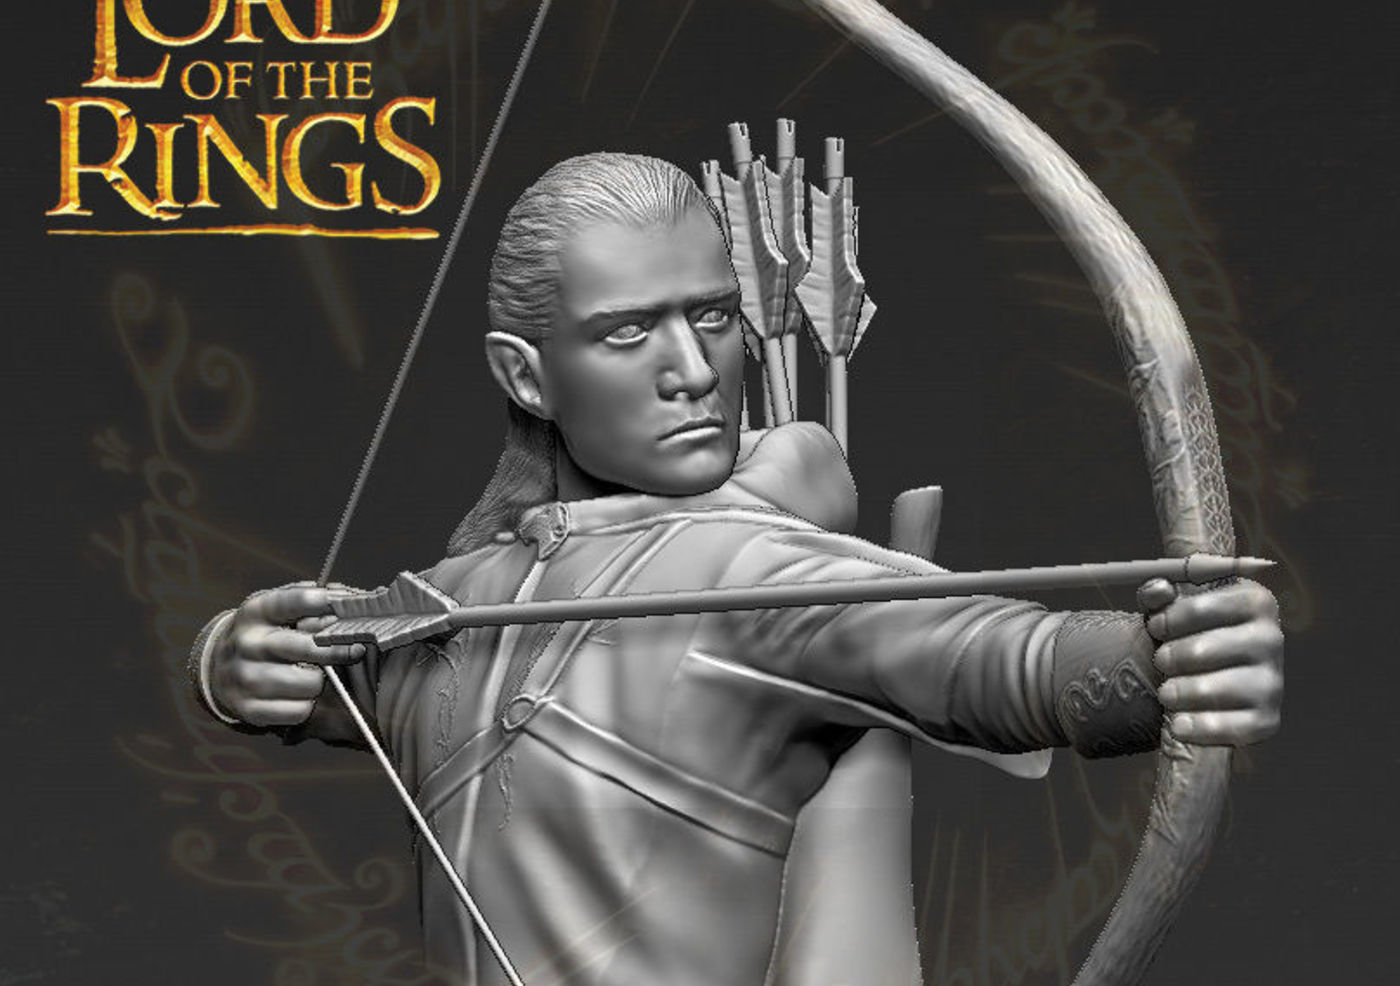 Legolas The Lord of the Rings 3D printable | CGTrader